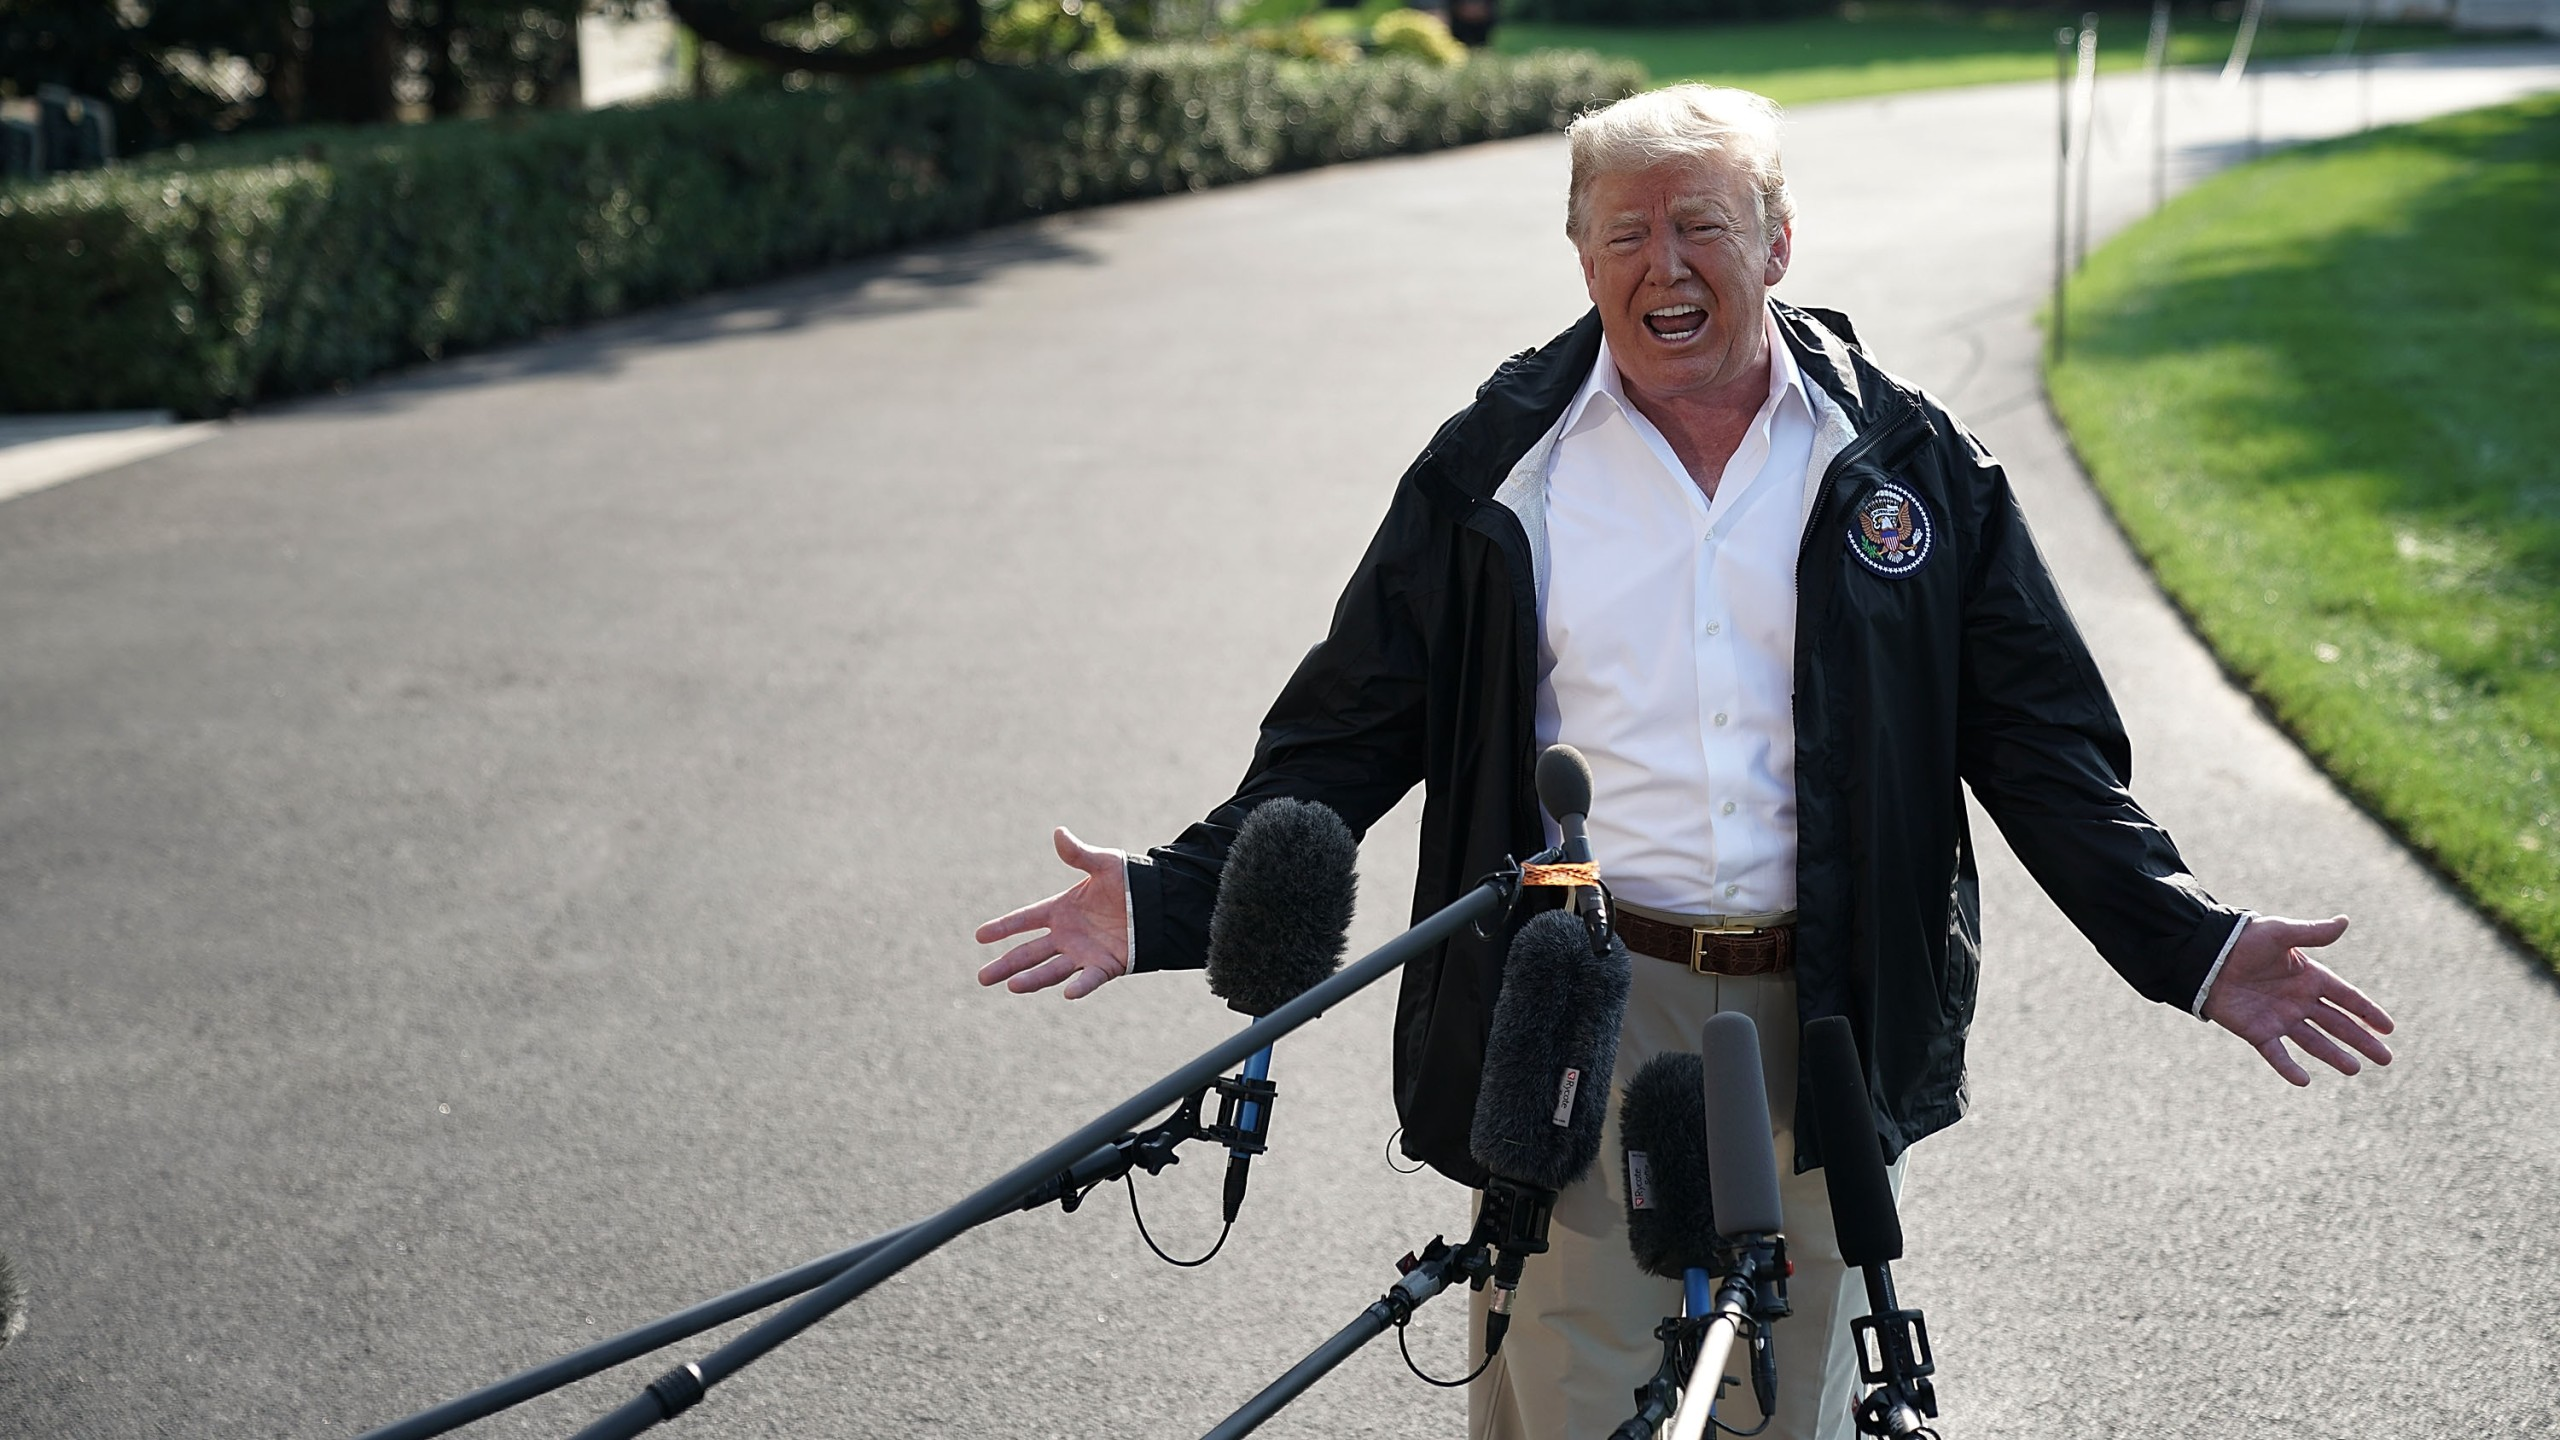 Donald Trump speaks to members of the media prior to a Marine One departure at the South Lawn of the White House on Sept. 19, 2018. (Credit: Alex Wong/Getty Images)